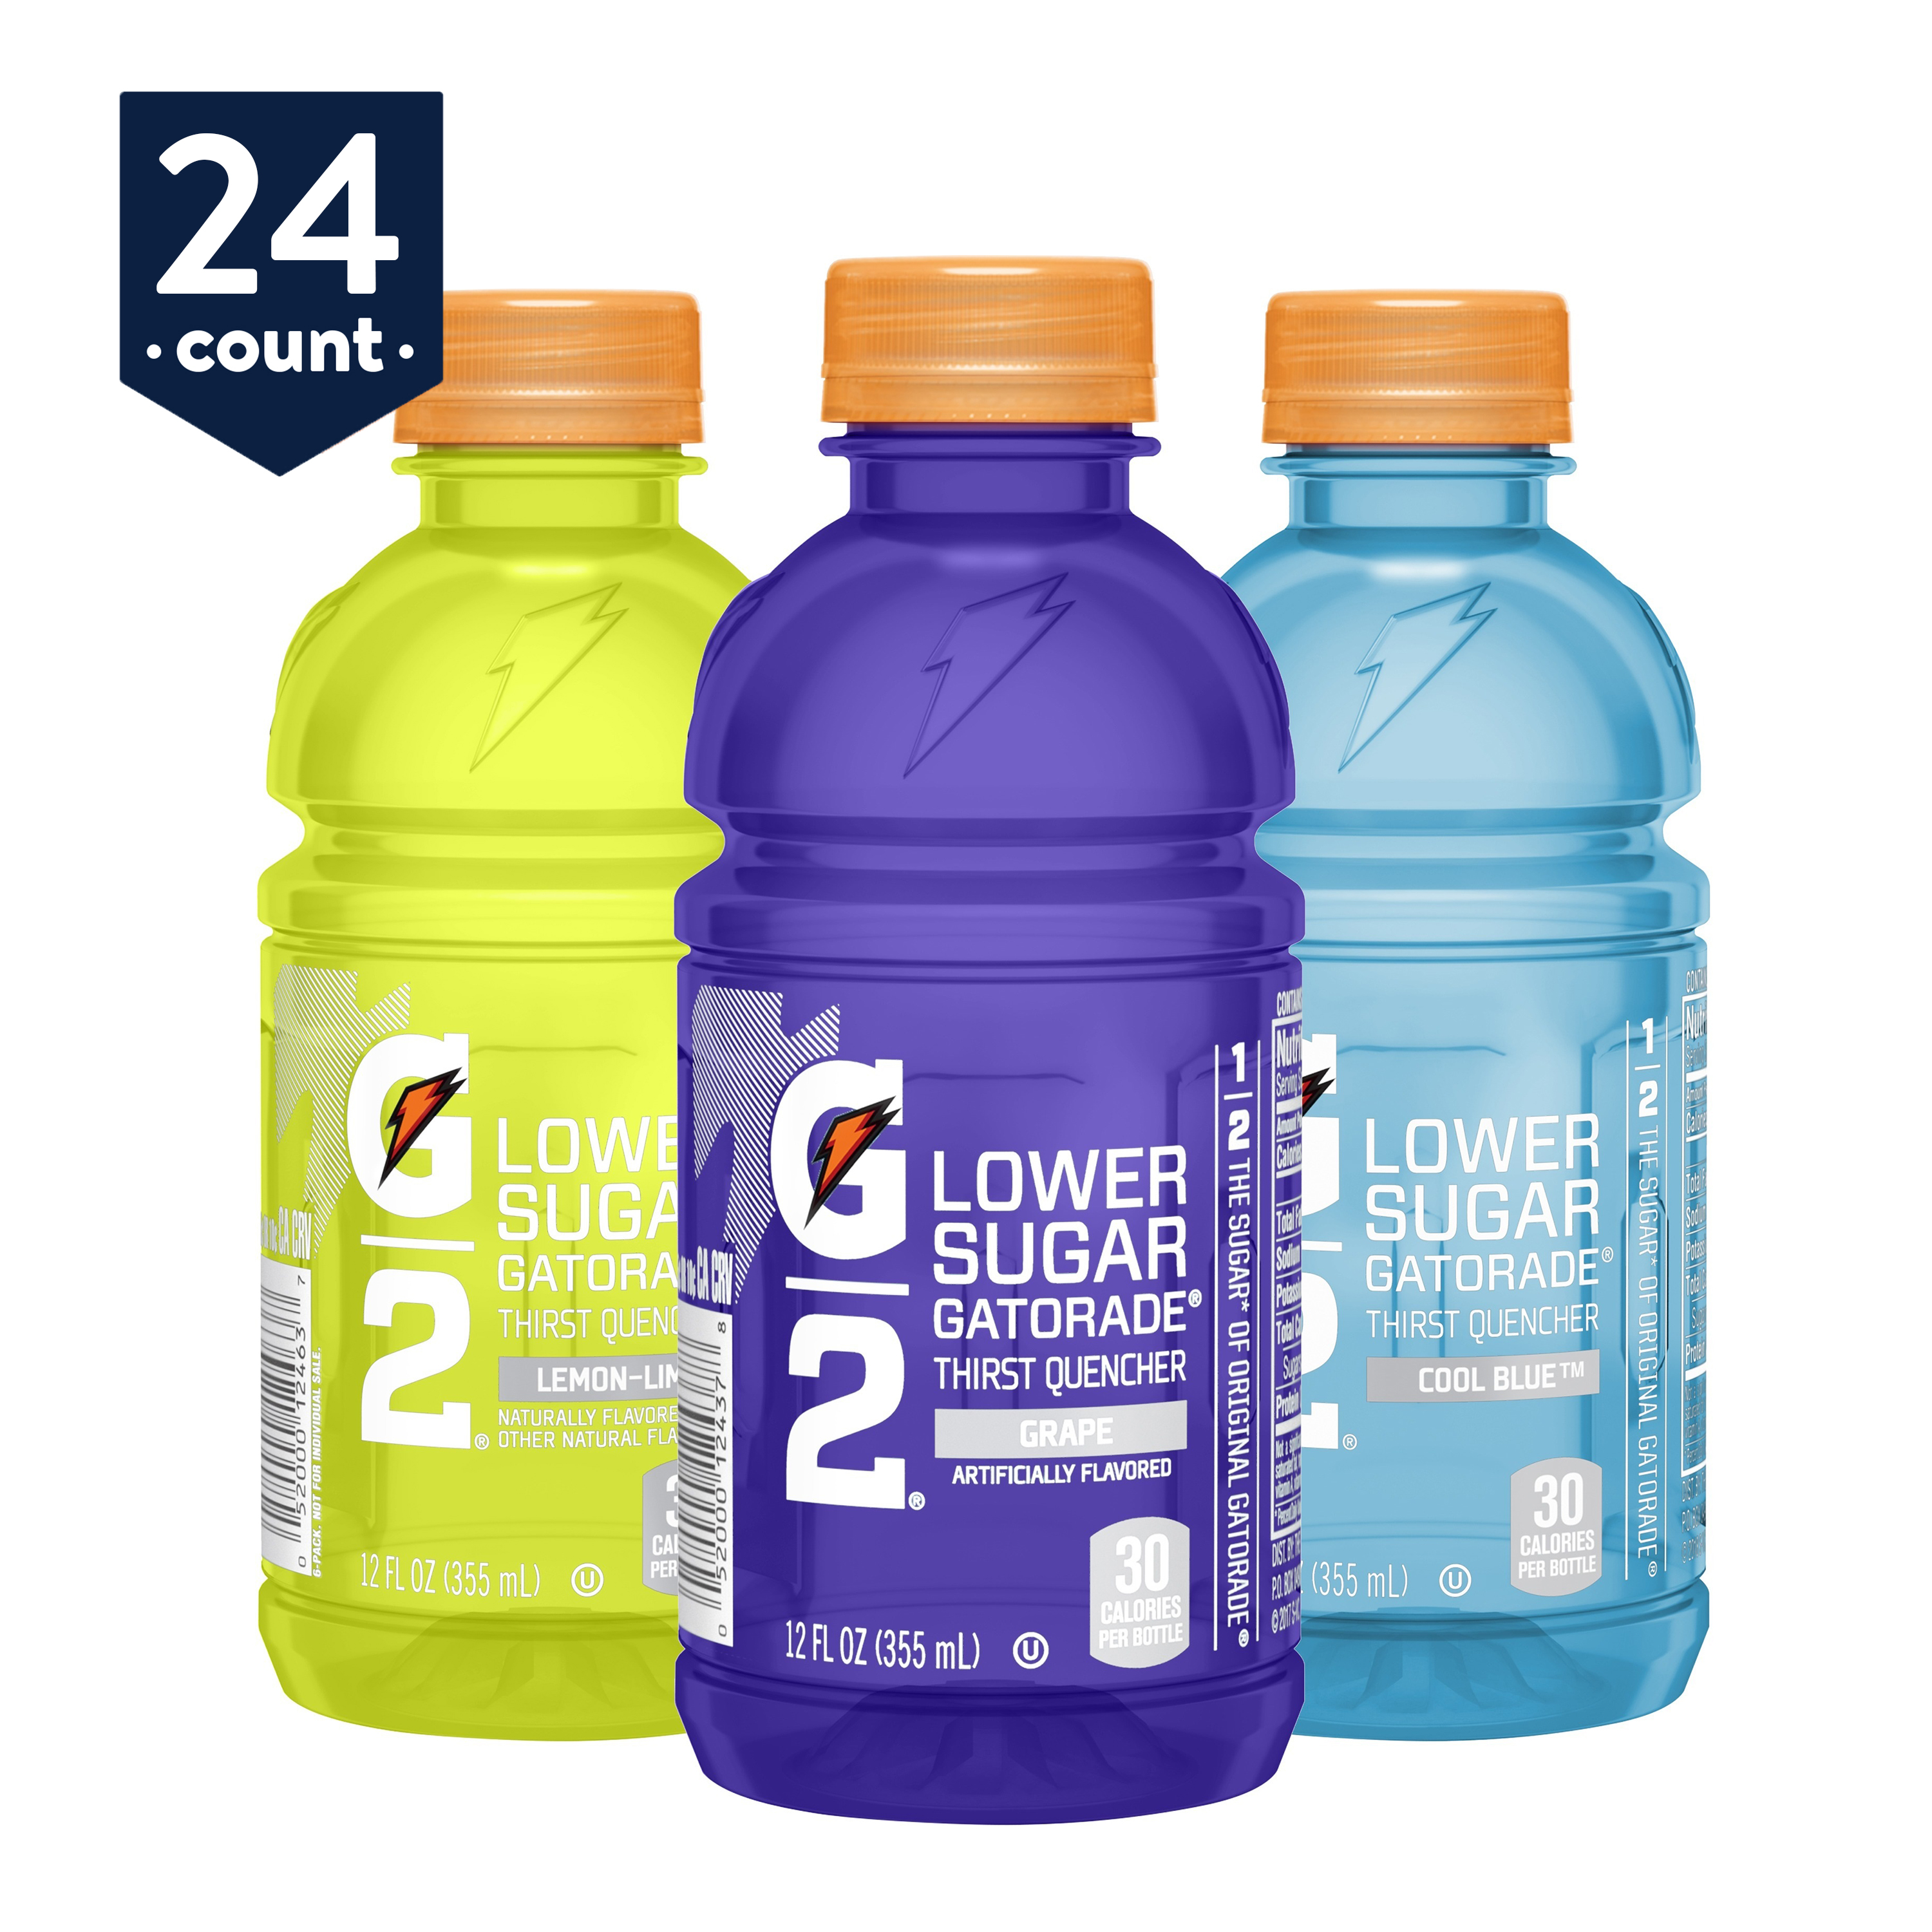 Gatorade G2 Thirst Quencher Low Calorie Sports Drink, 3 Flavor Variety Pack, 12 oz Bottles, 24 Count